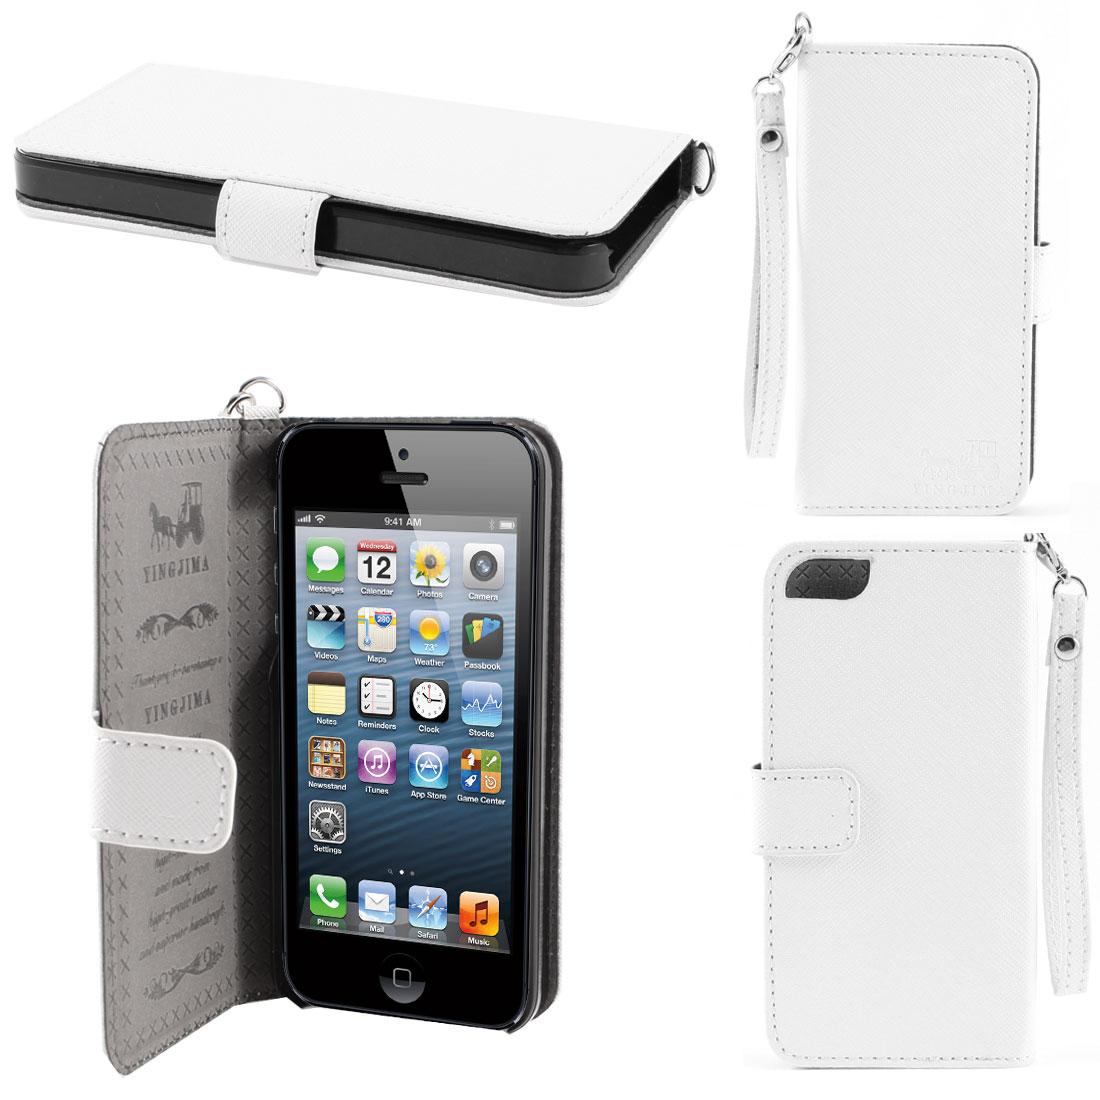 White Faux Leather Magnetic Flip Case Cover Pouch Holder for iPhone 5 5G 5th